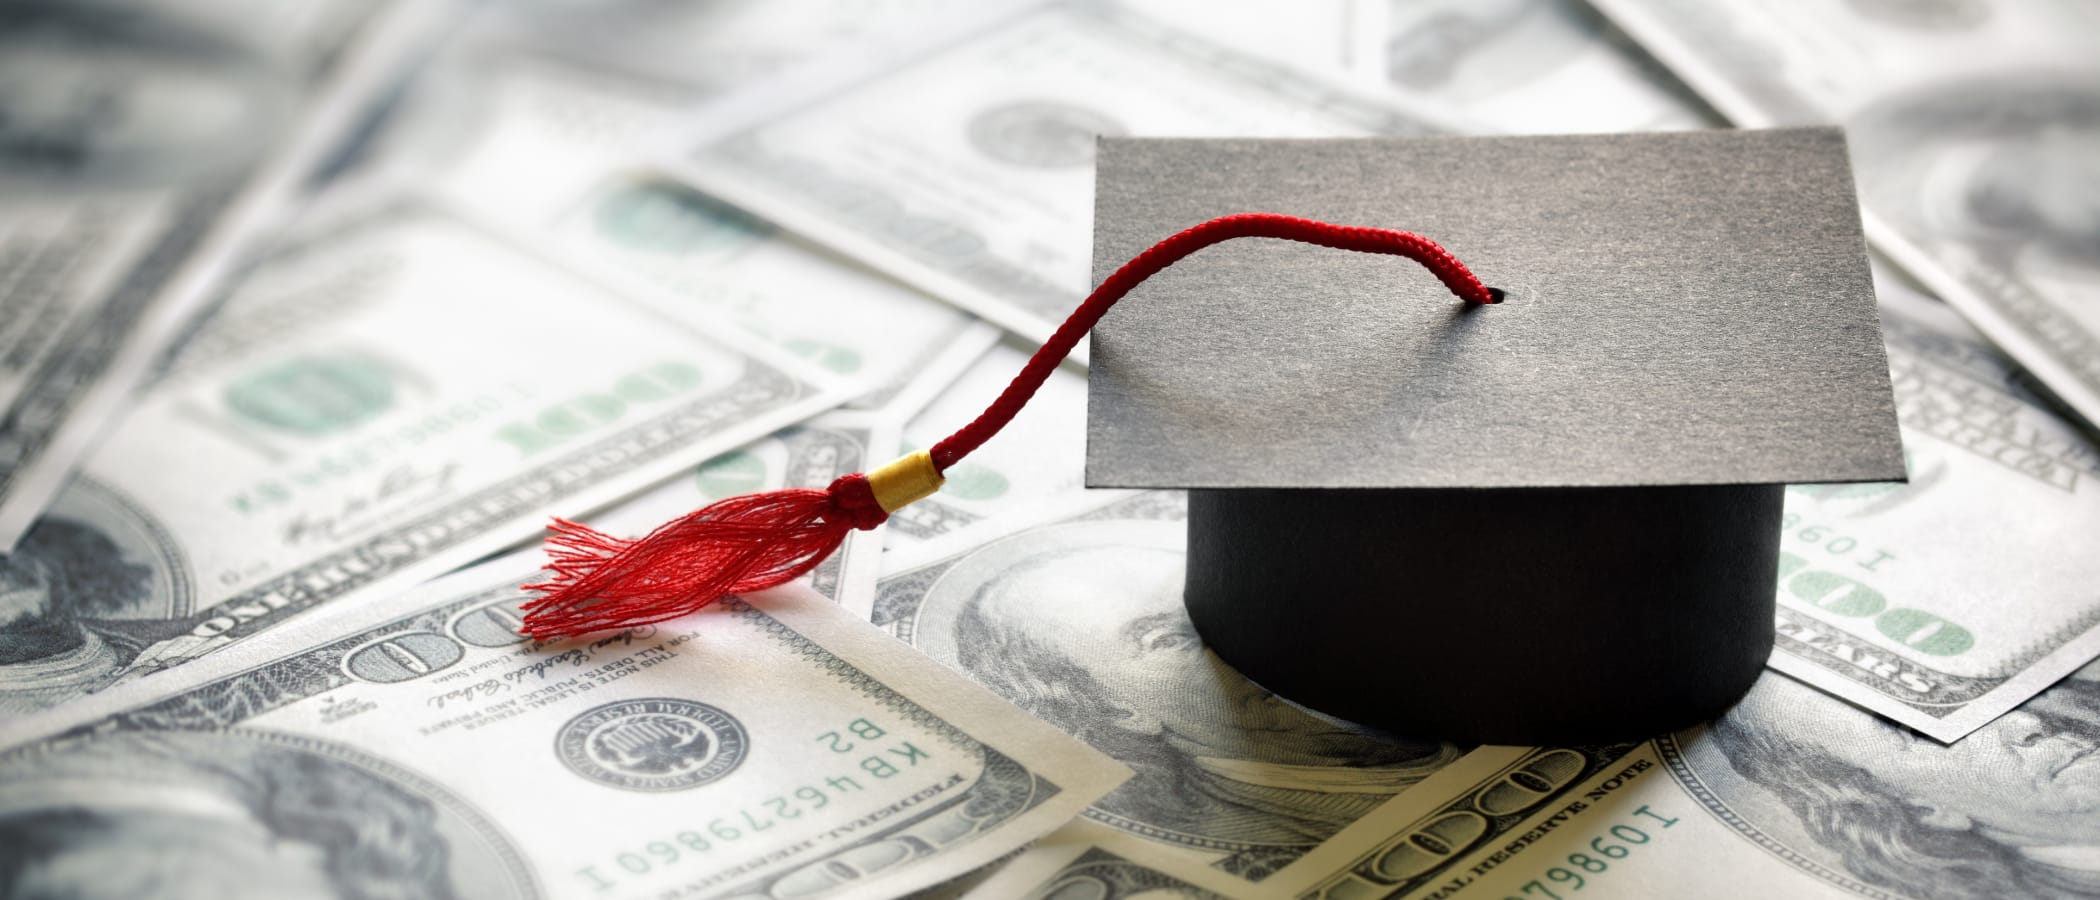 Employers Explore Repaying Student Loan Debt